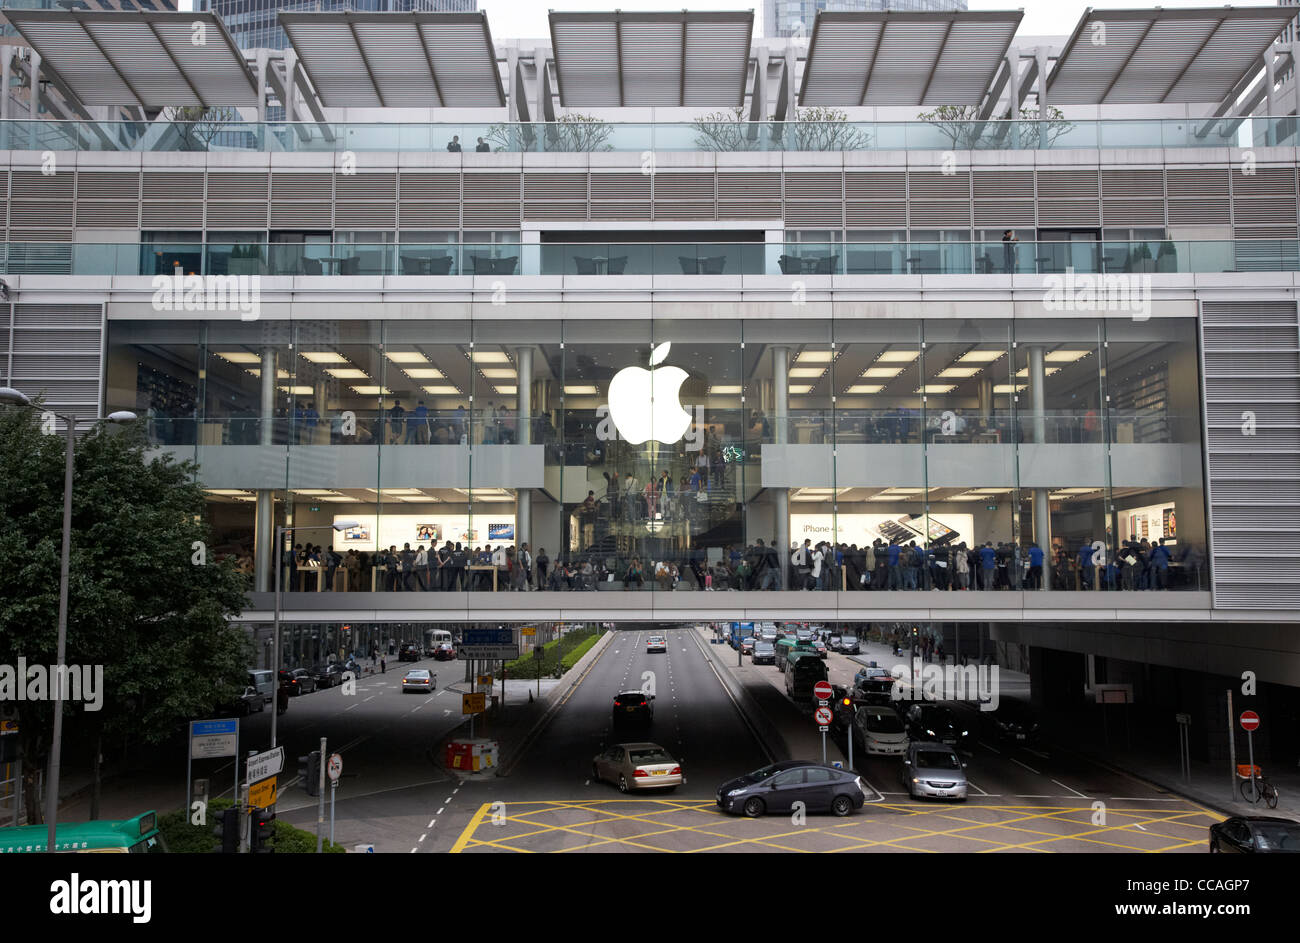 the apple store in the ifc mall in central hong kong hksar china asia Stock Photo